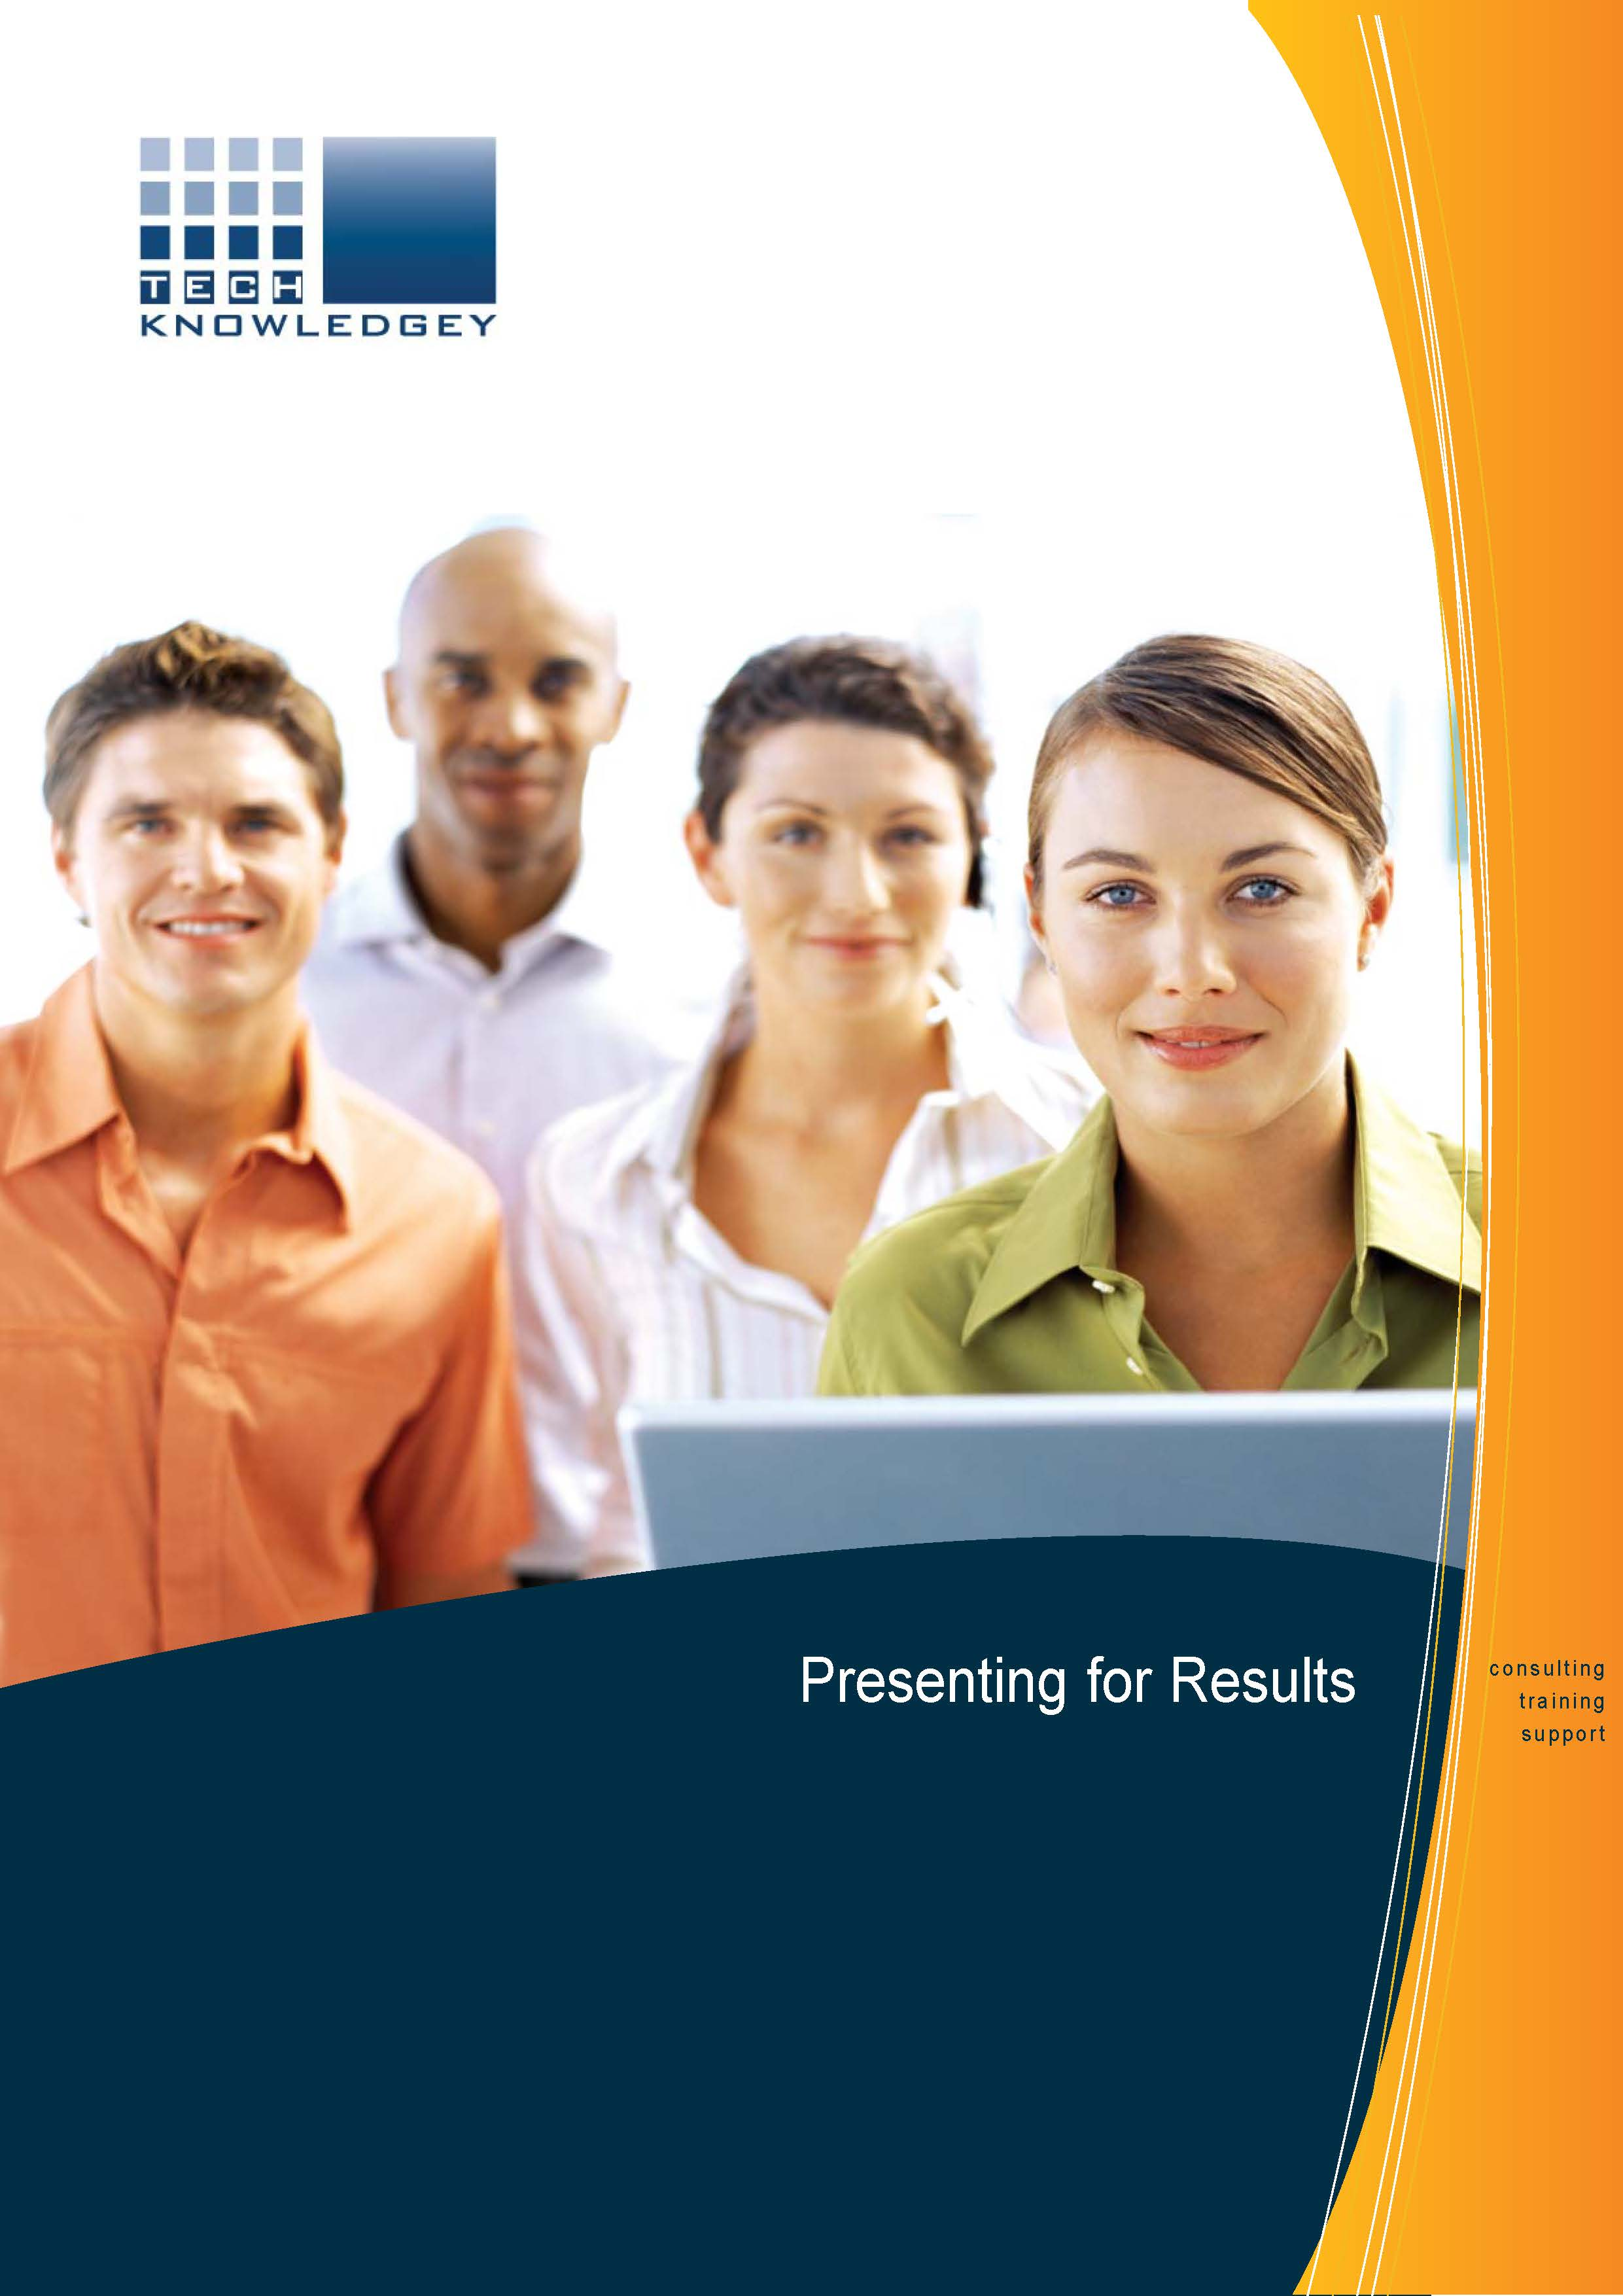 Presenting for Results Courseware